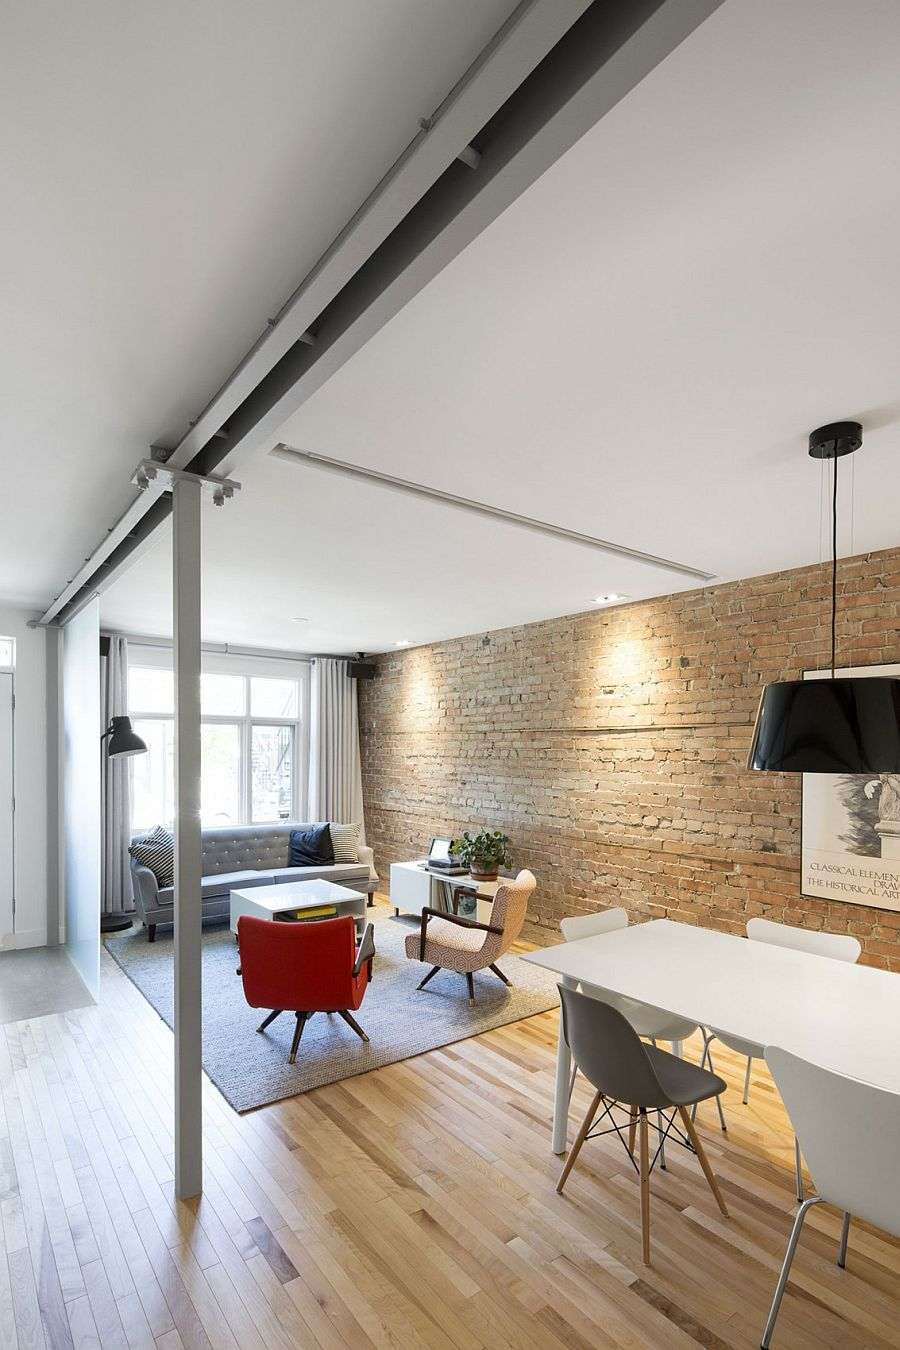 Original brick wall of the renovated 1924 building in quebec Sensible Styling: Breezy Remodel of Apartment Set in 1920s Building